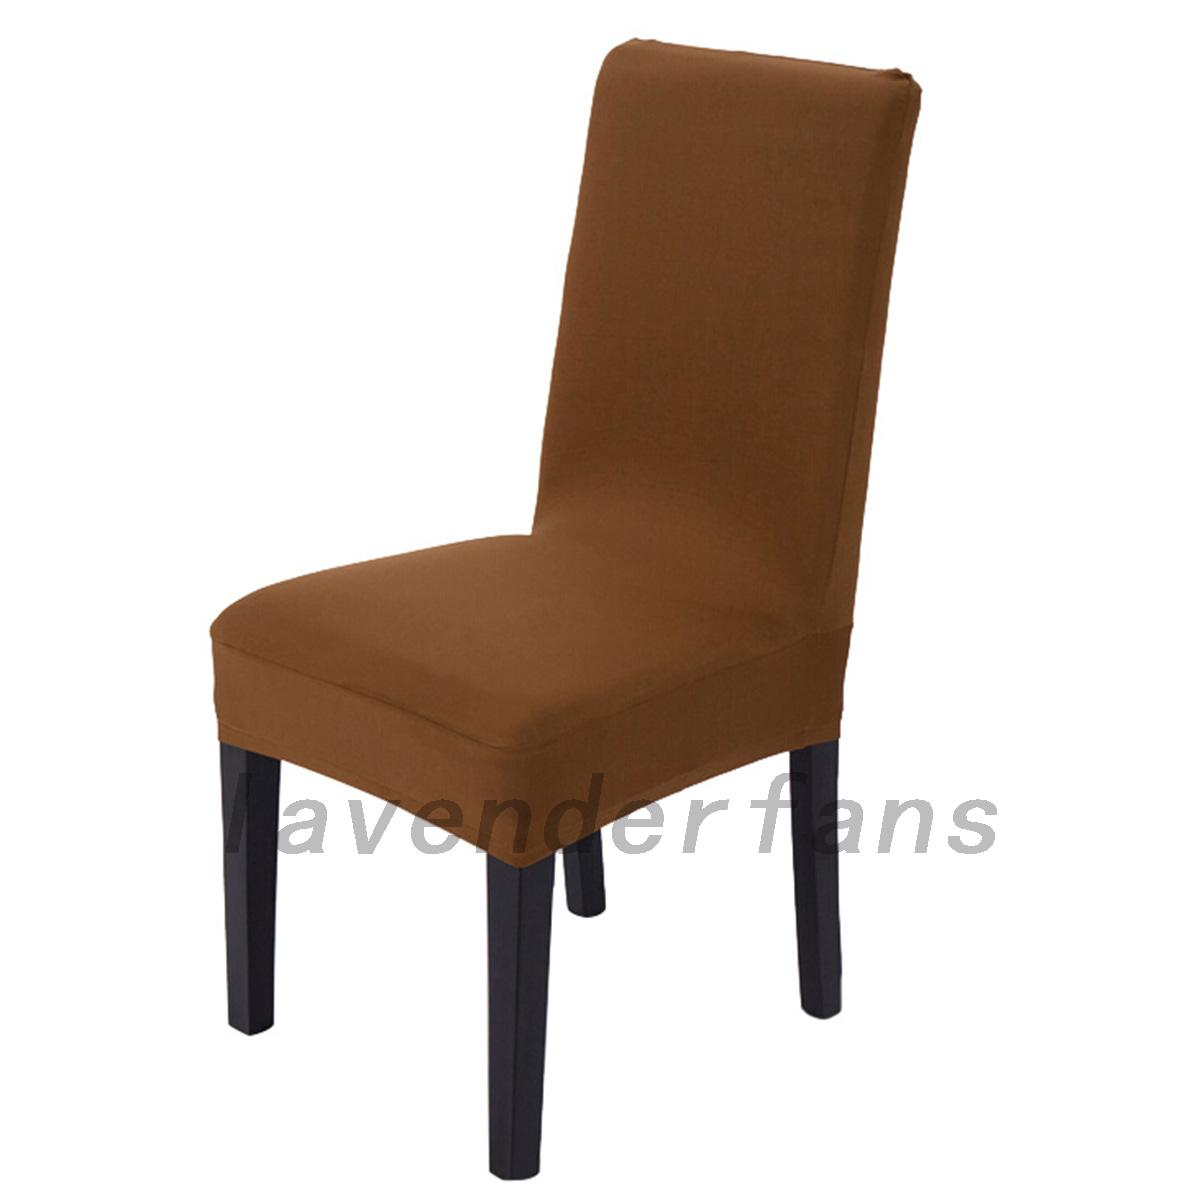 Universal Stretch Spandex Dining Room Banquet Chair Cover  : 0 03 from www.ebay.com.au size 1200 x 1200 jpeg 47kB